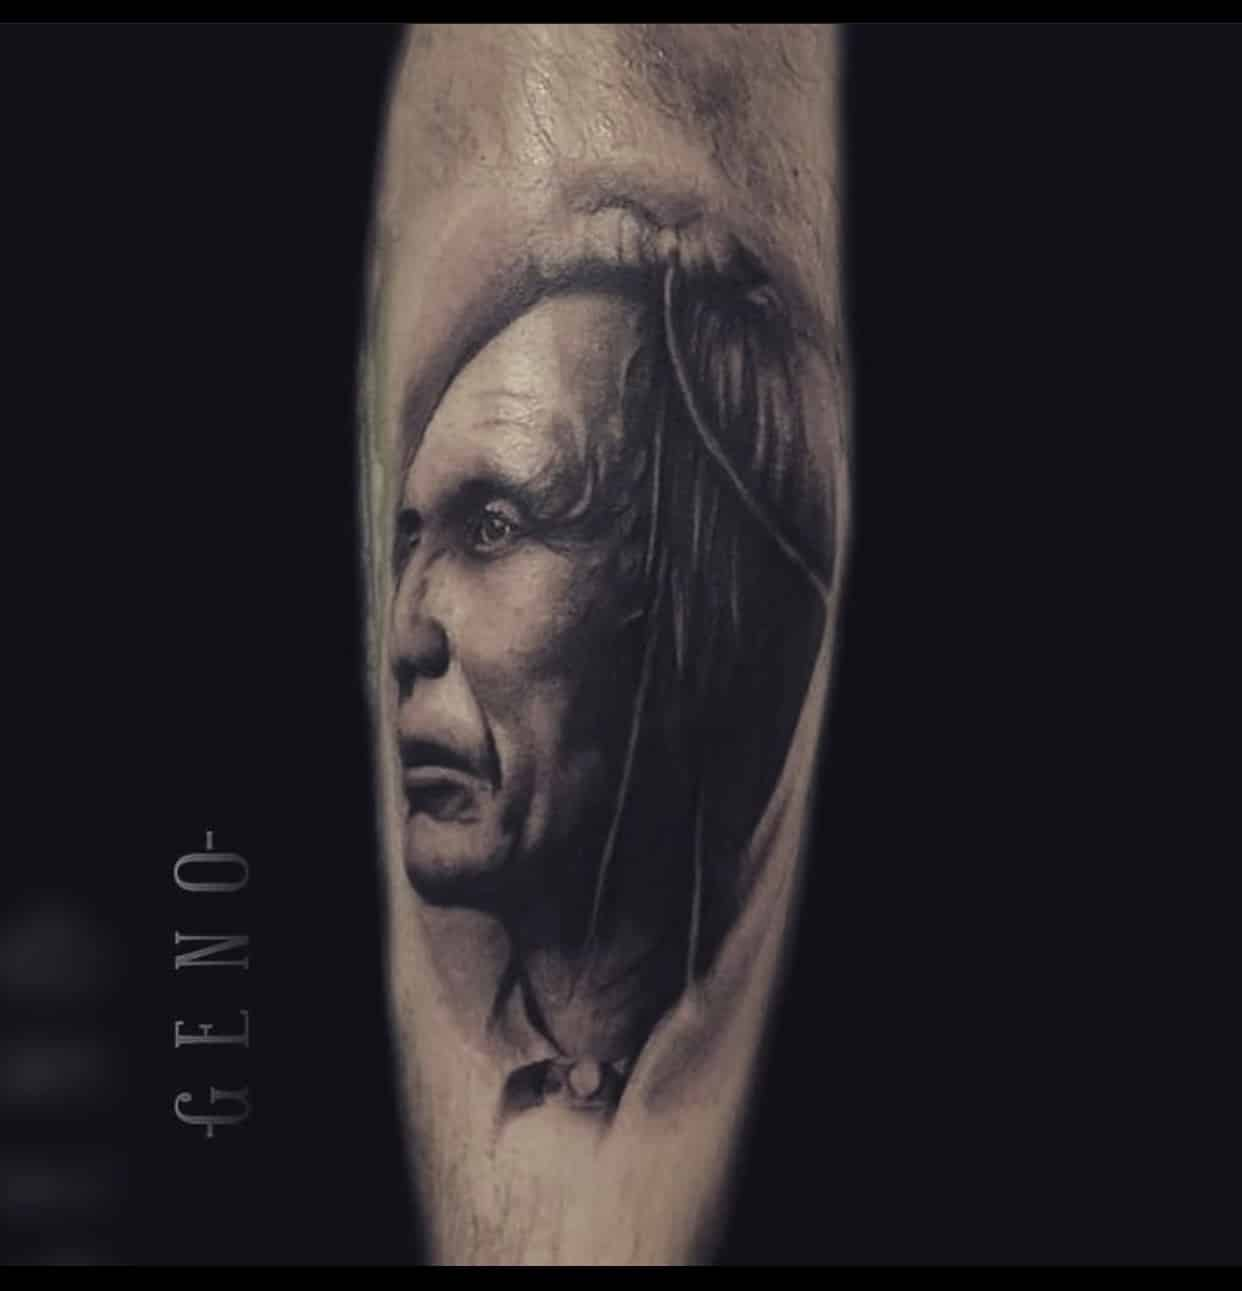 Indian tribe leader tattoo